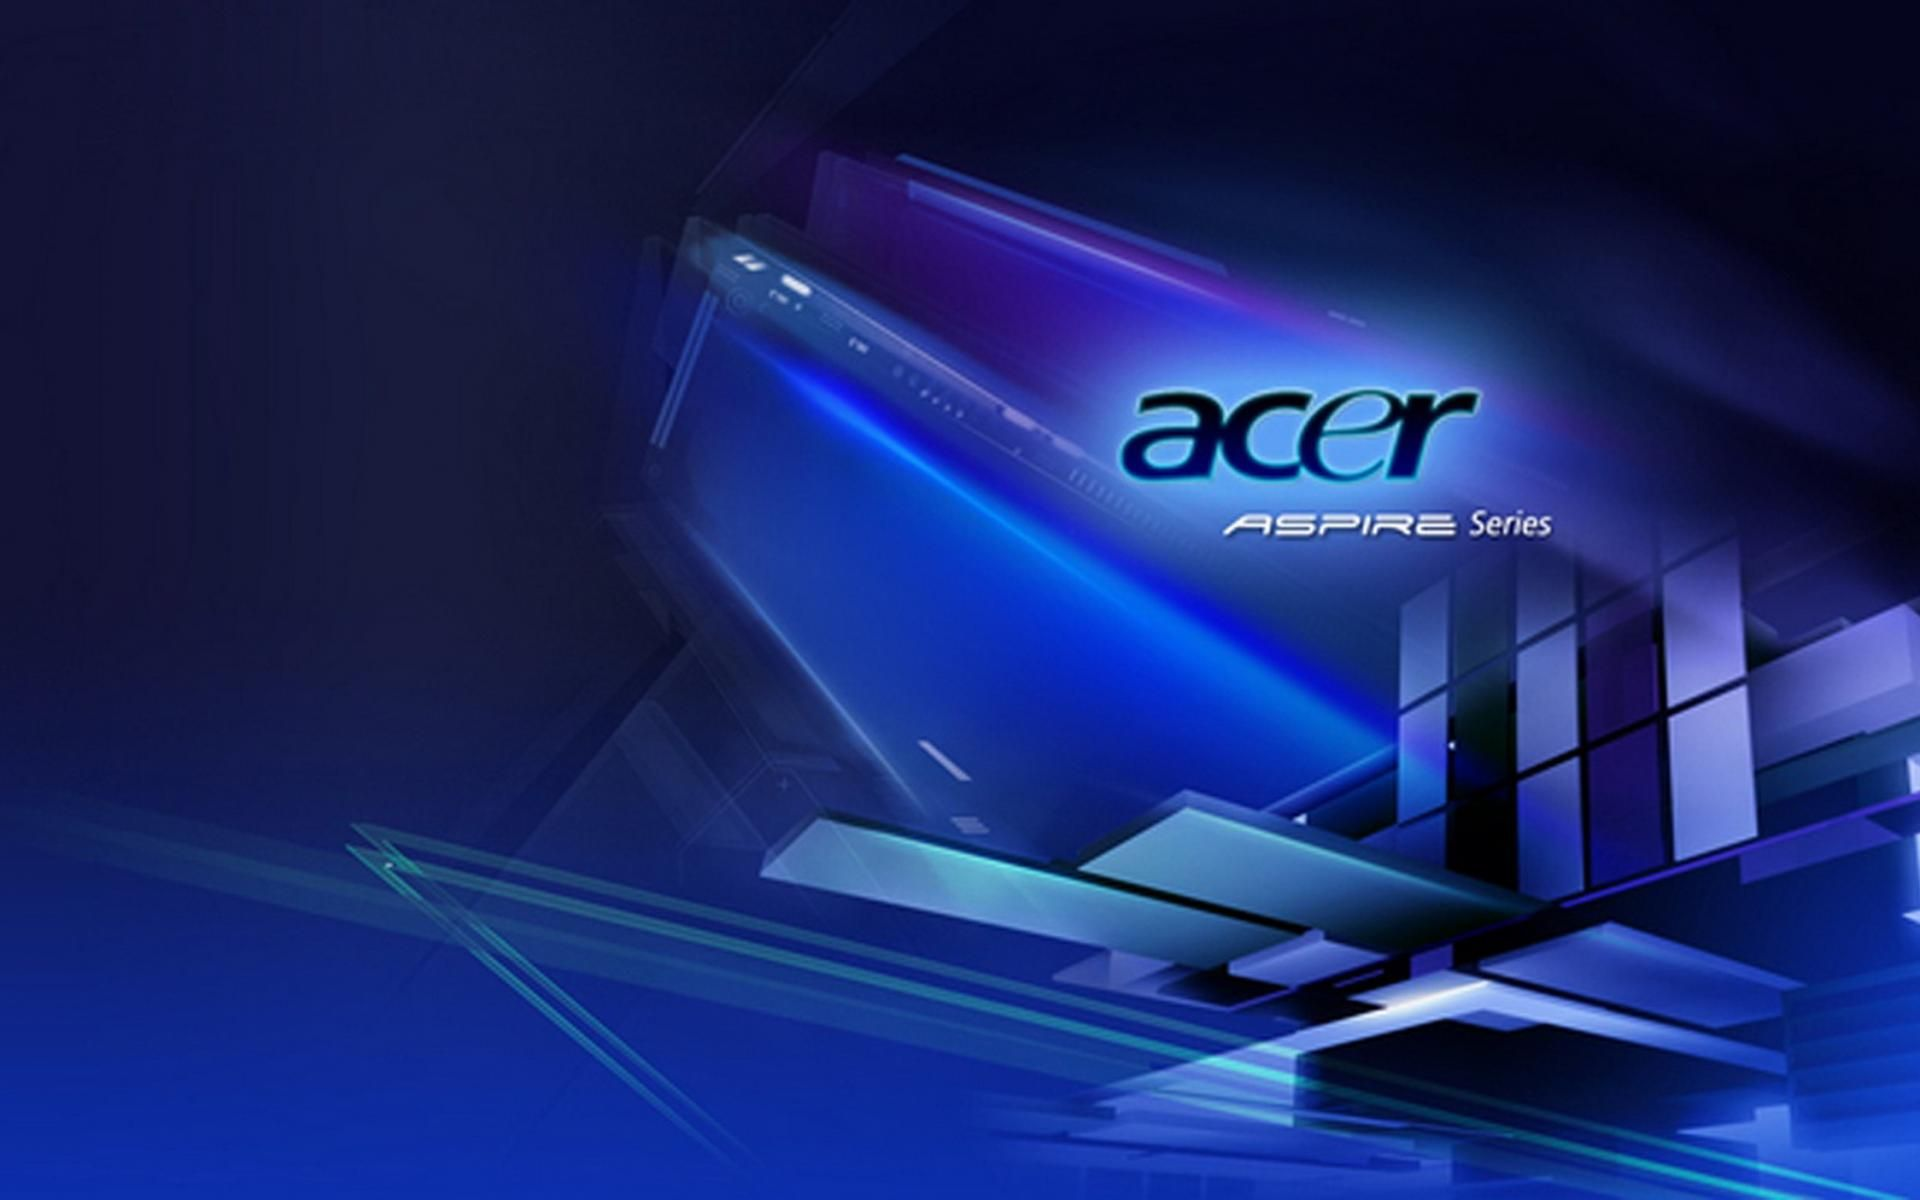 Acer Windows 10 Wallpaper, Super HDQ Acer Windows 10